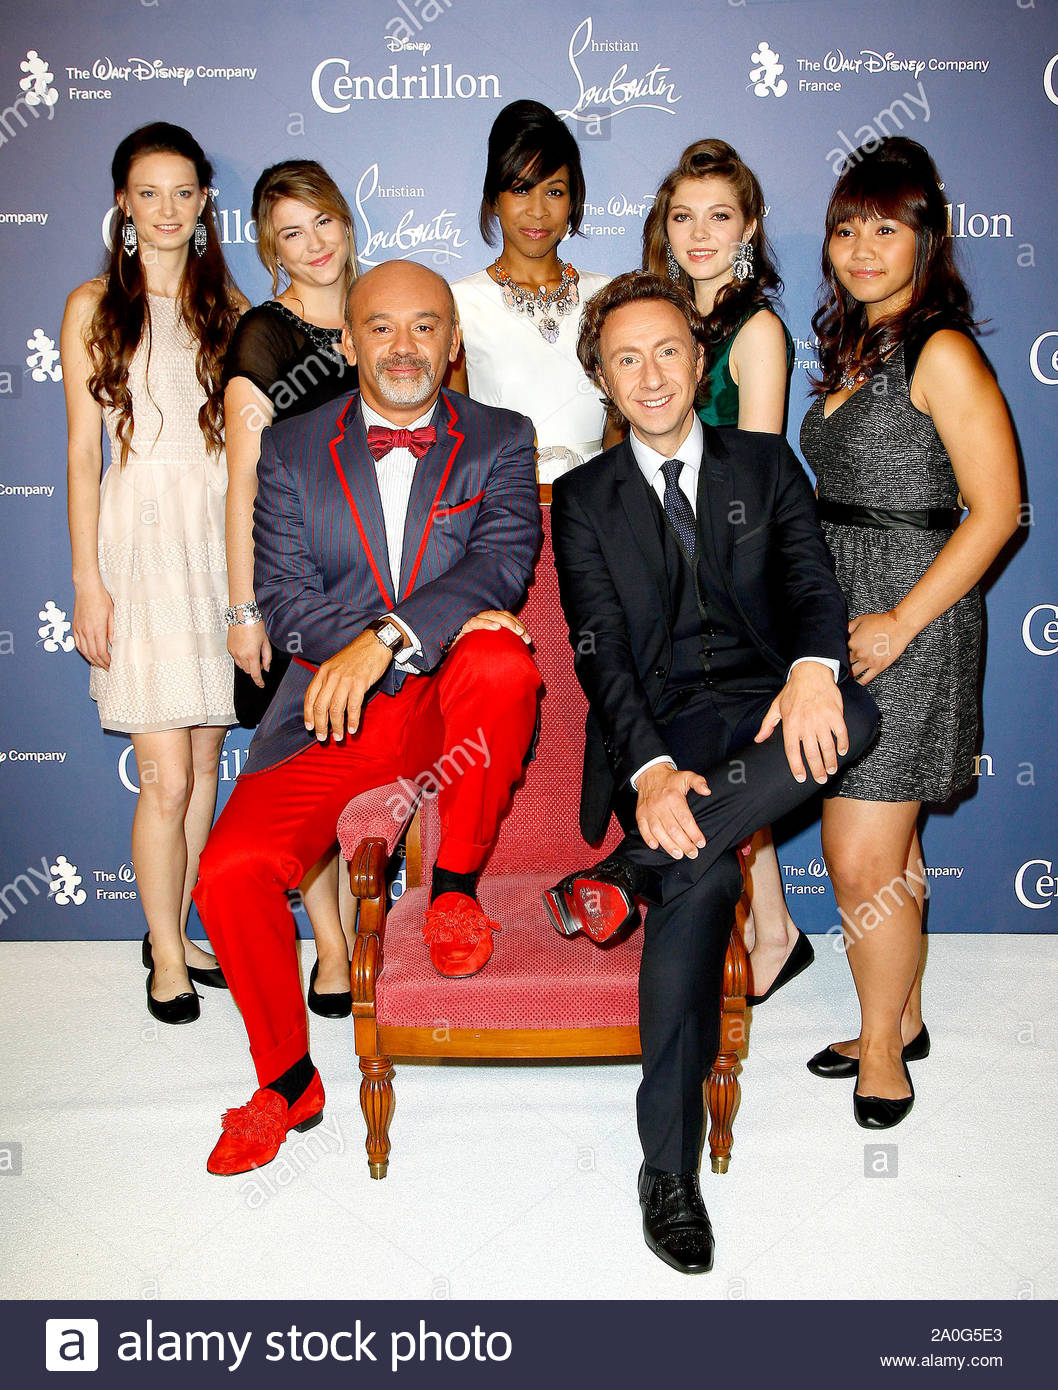 Paris France French Designer Christian Louboutin Hosts The Event Cendrillon Louboutin Held At The Grand Rex Cinema To Celebrate The Release Of Cinderella In Blu Ray Disney Asked The Designer To Create In